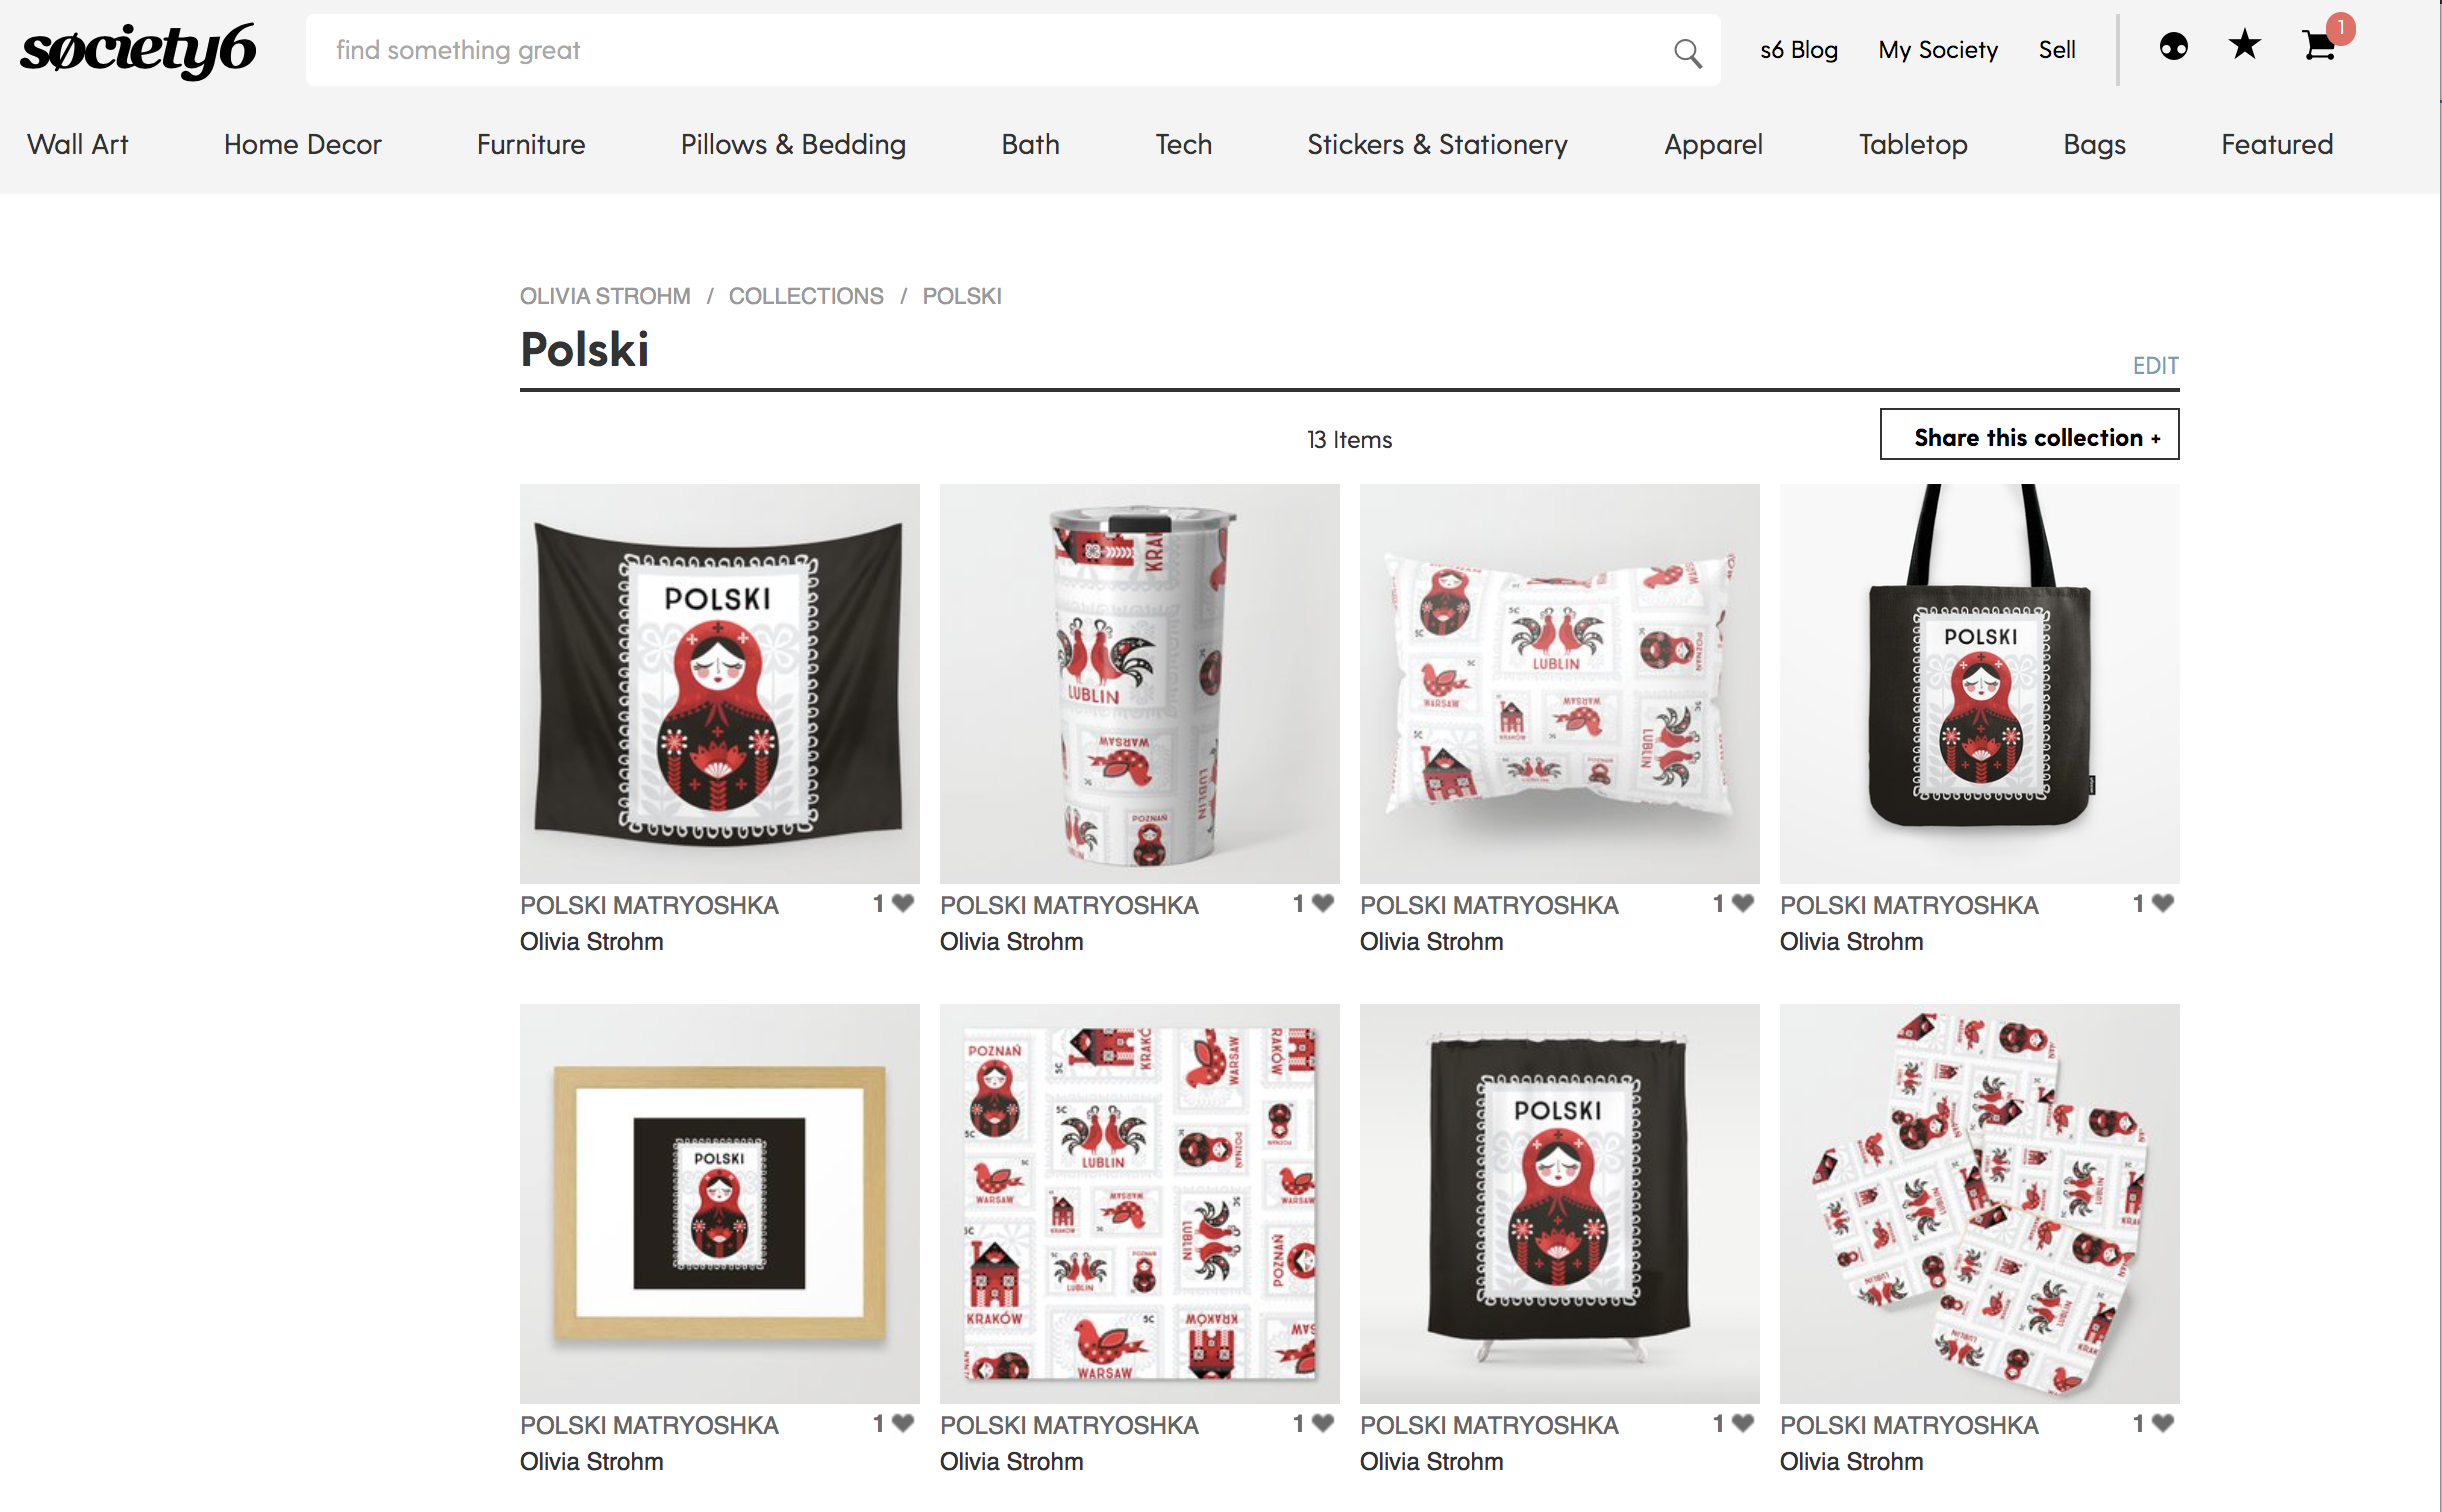 Society6 Click Through